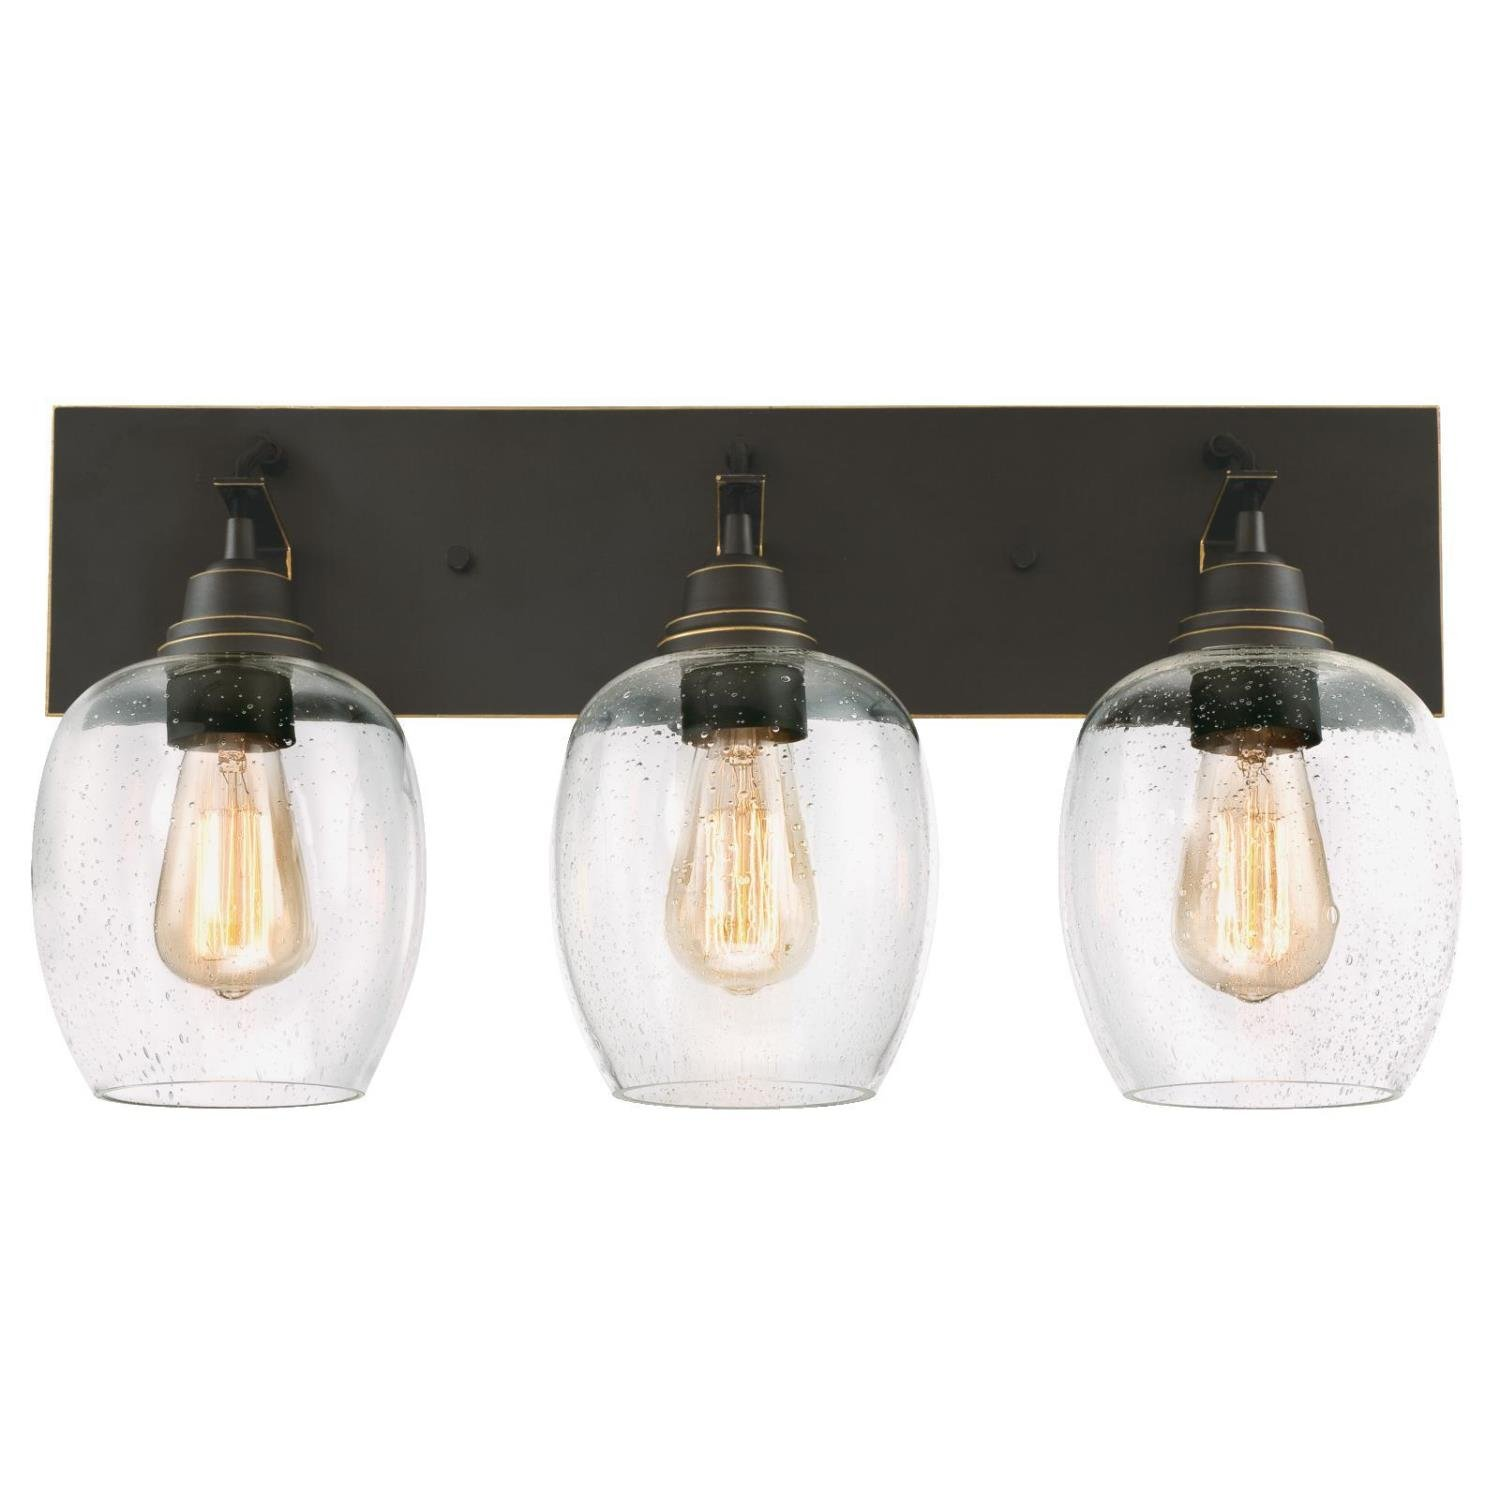 Westinghouse 6333400 Eldon Indoor Wall Fixture, Oil Rubbed Bronze Finish with Highlights and Clear Seeded Glass, Three Light by Westinghouse